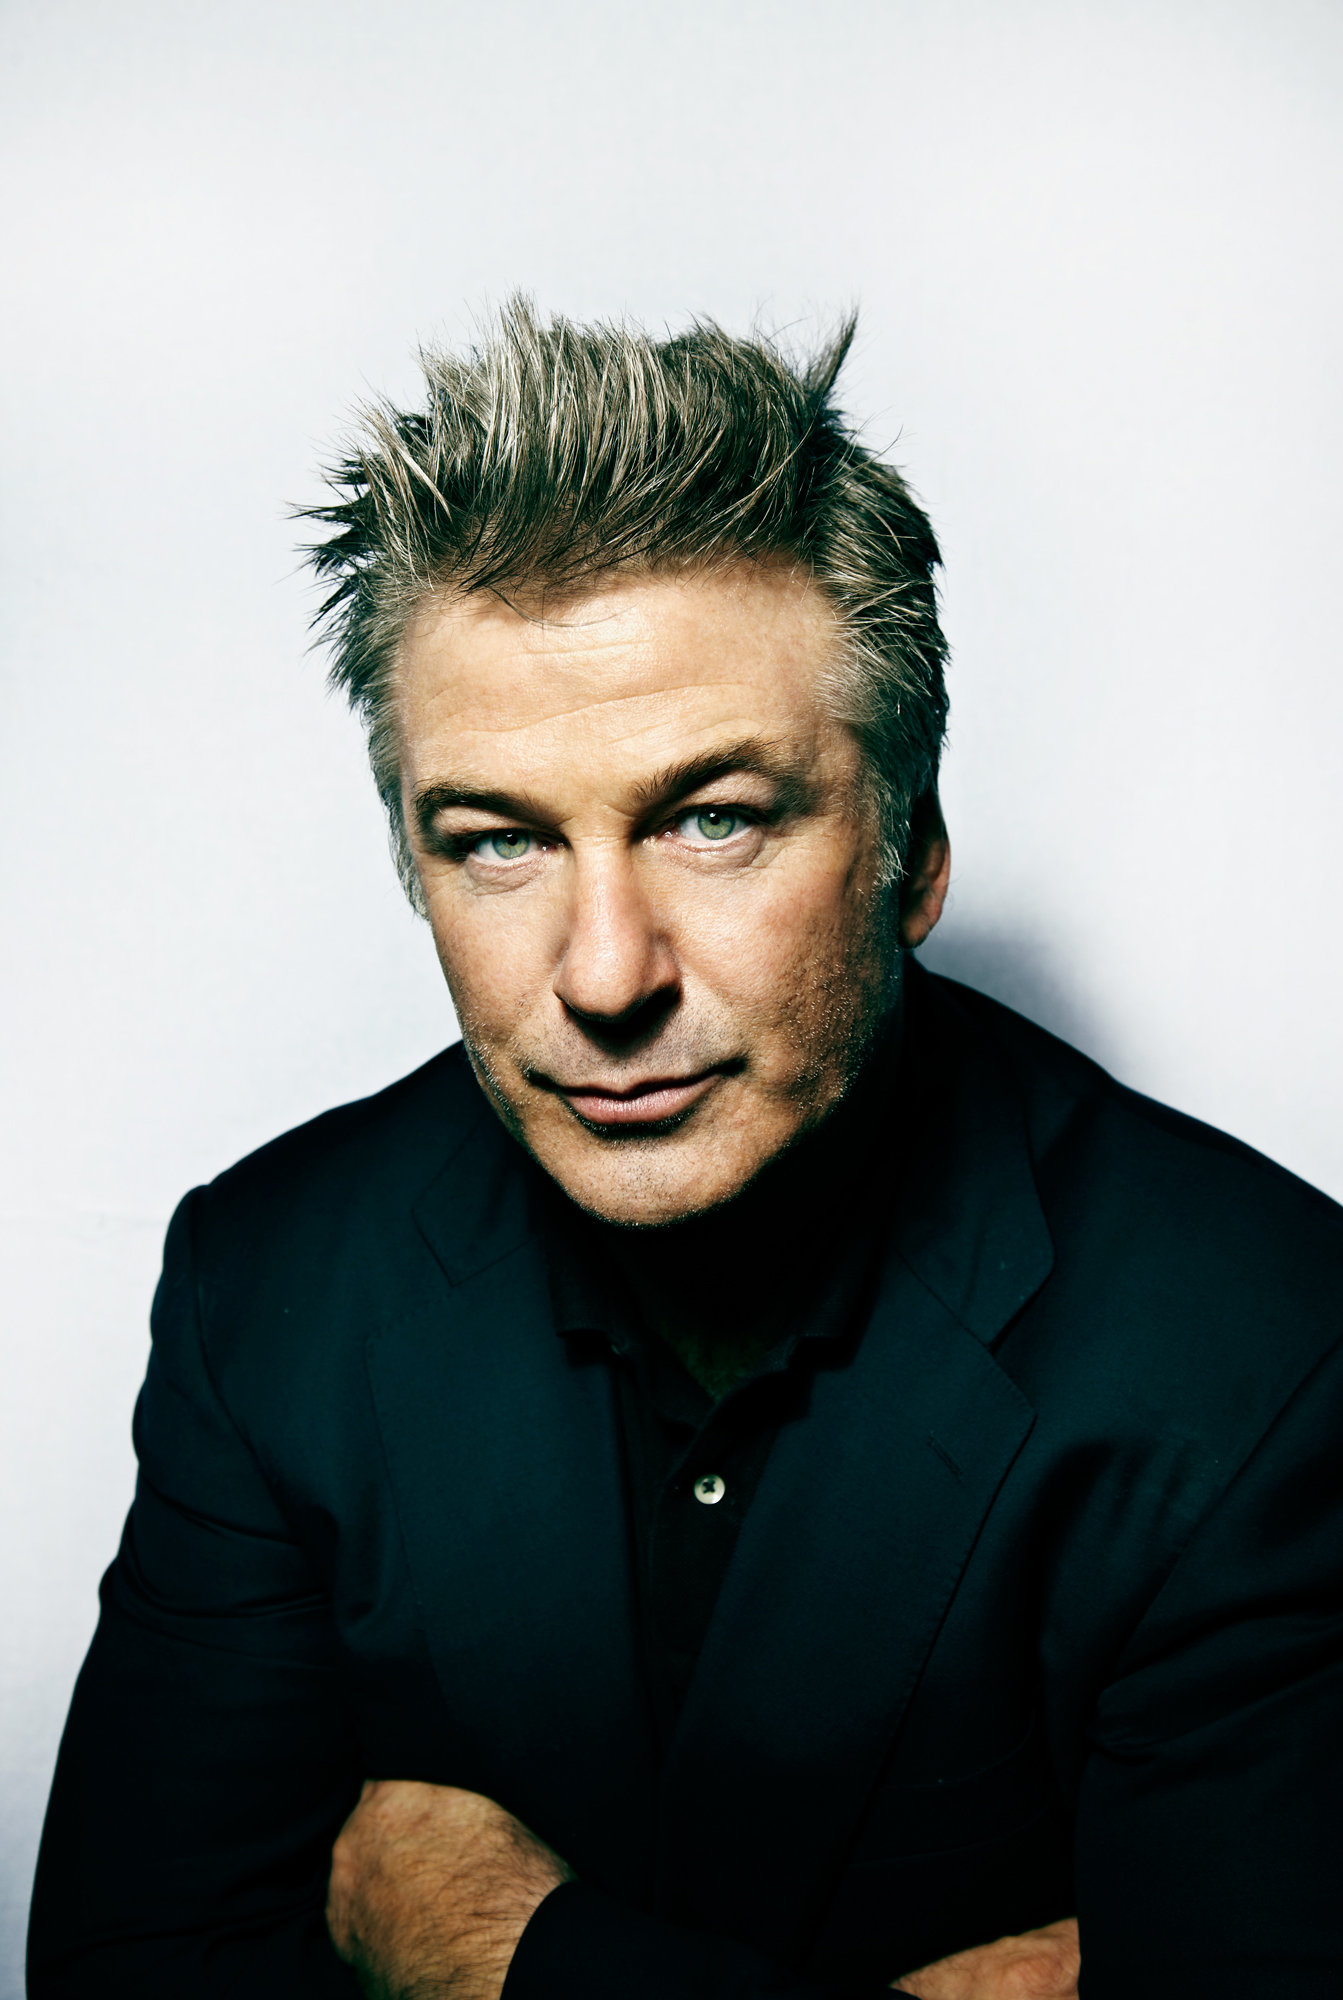 FILE2_-alec-baldwin_MG_0660-copy.jpg